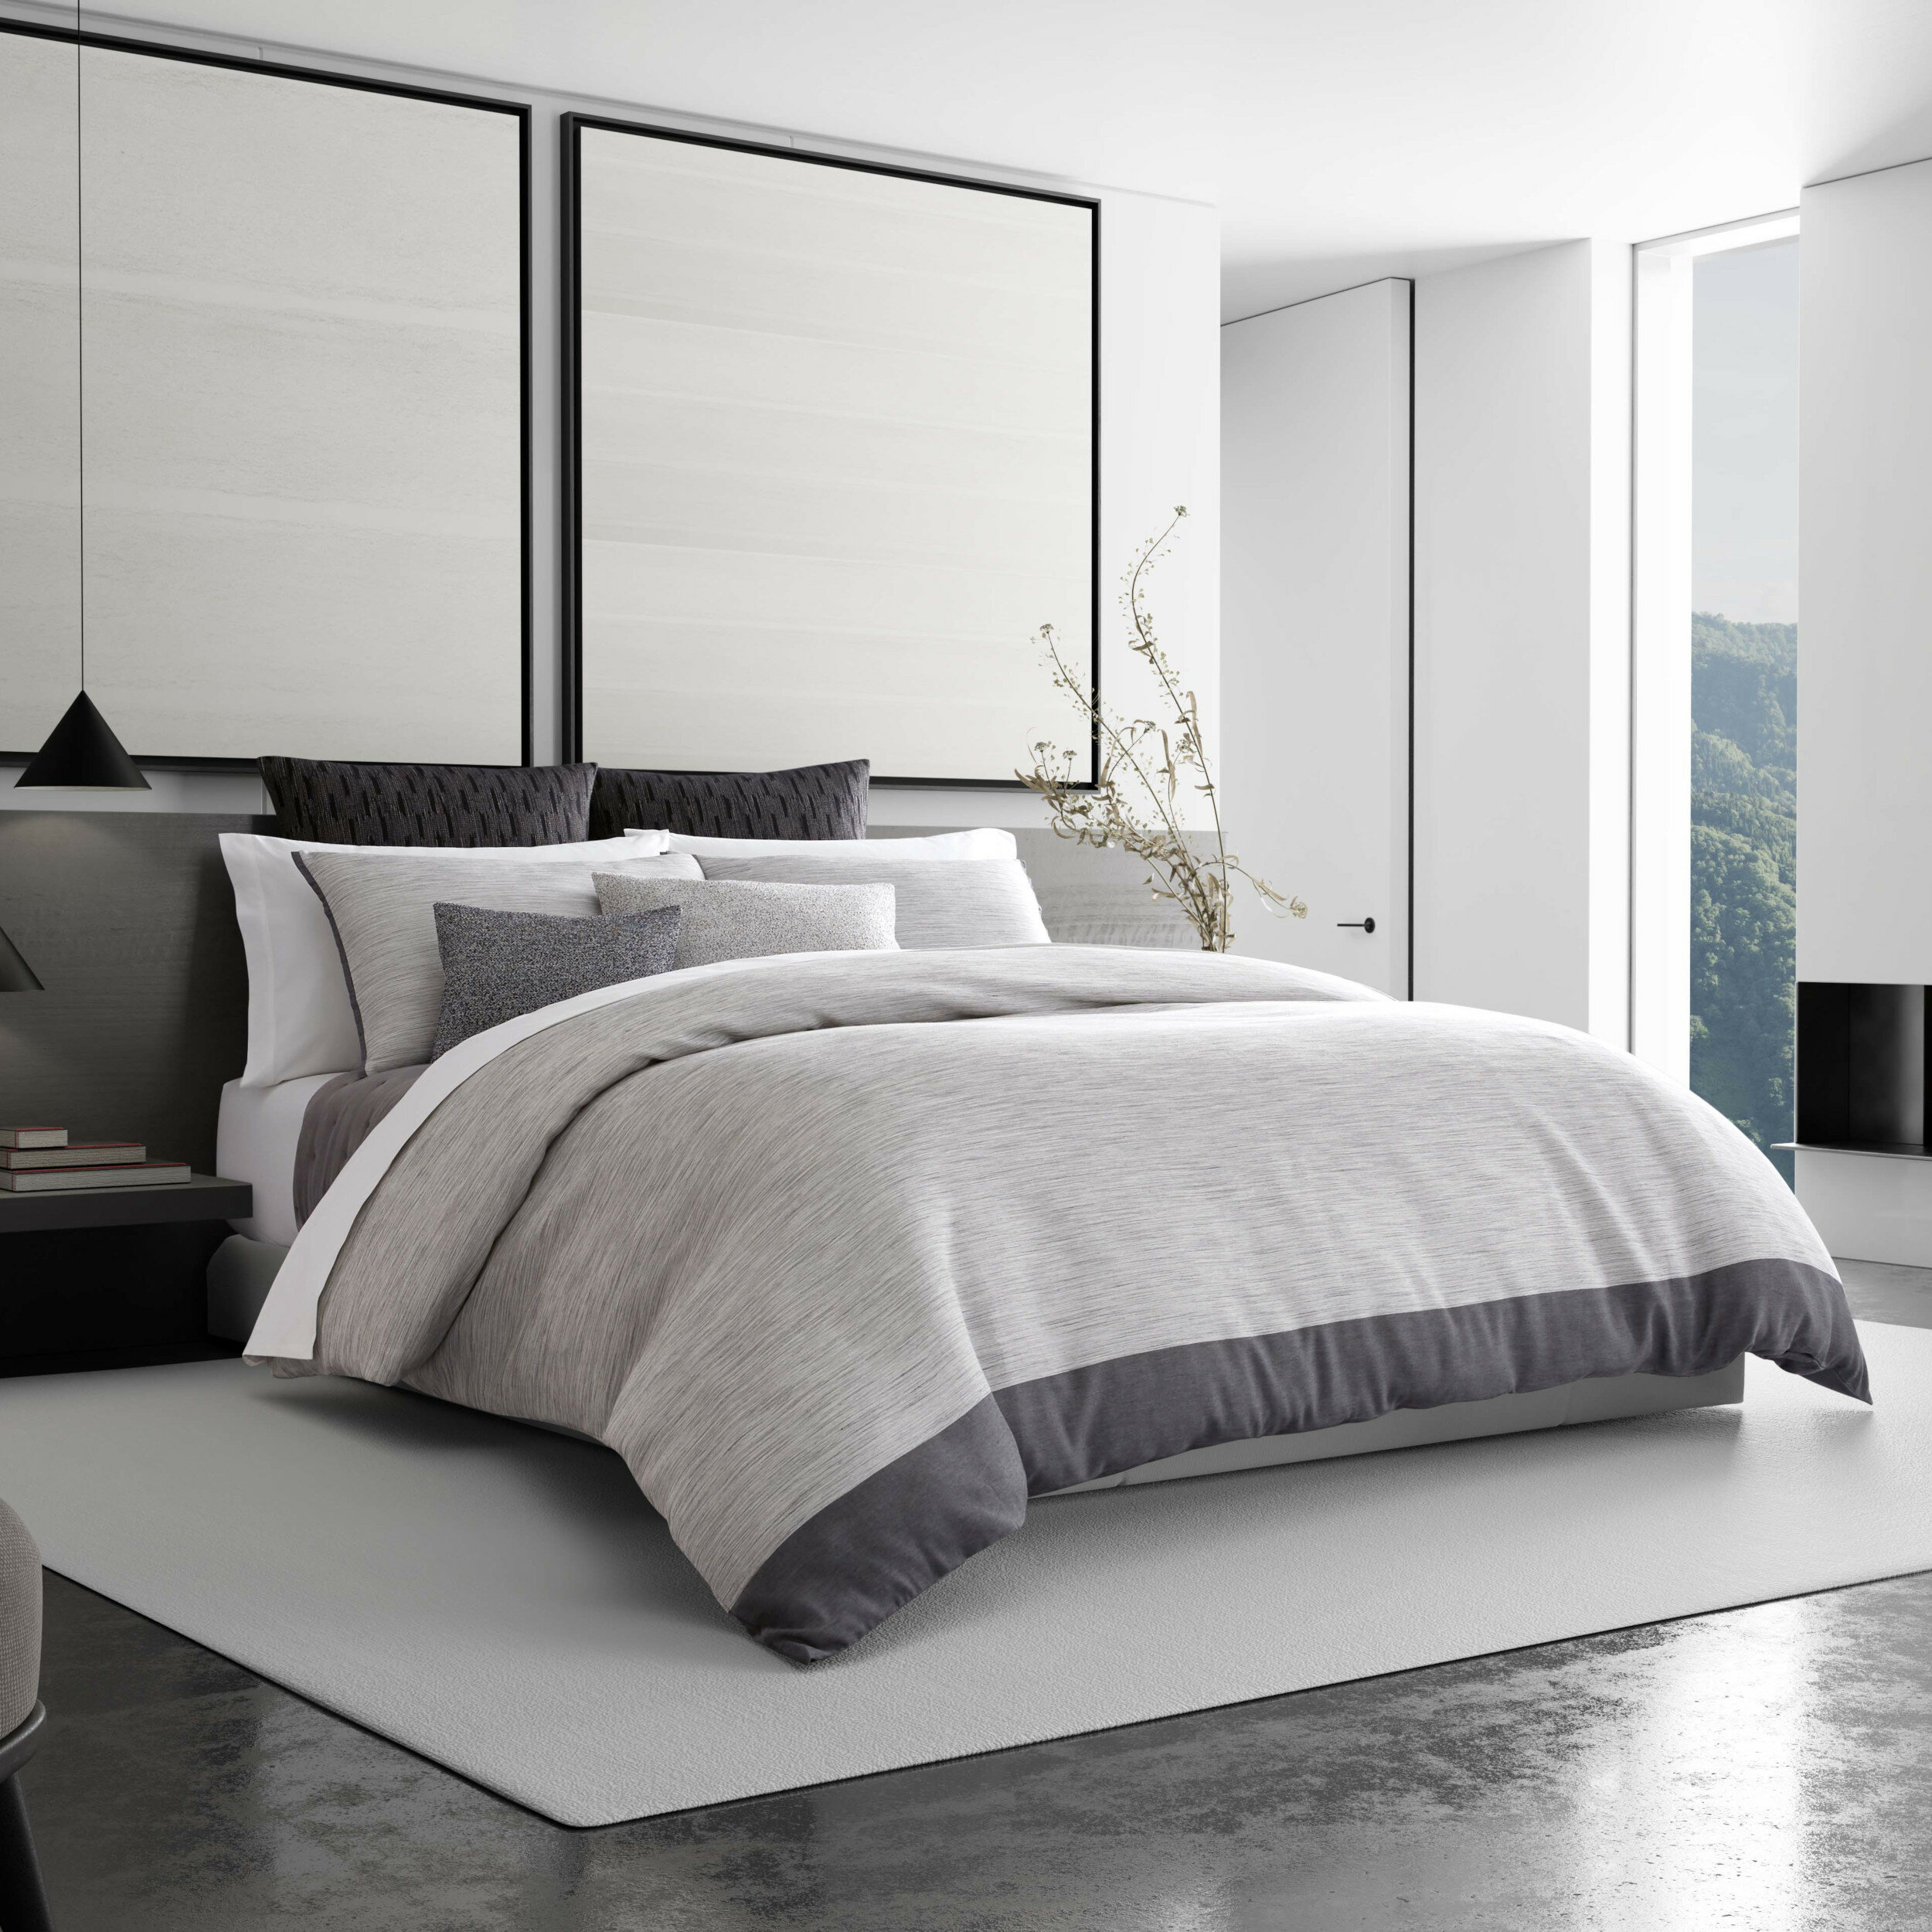 Vera Wang Single Reversible Duvet Cover Wayfair